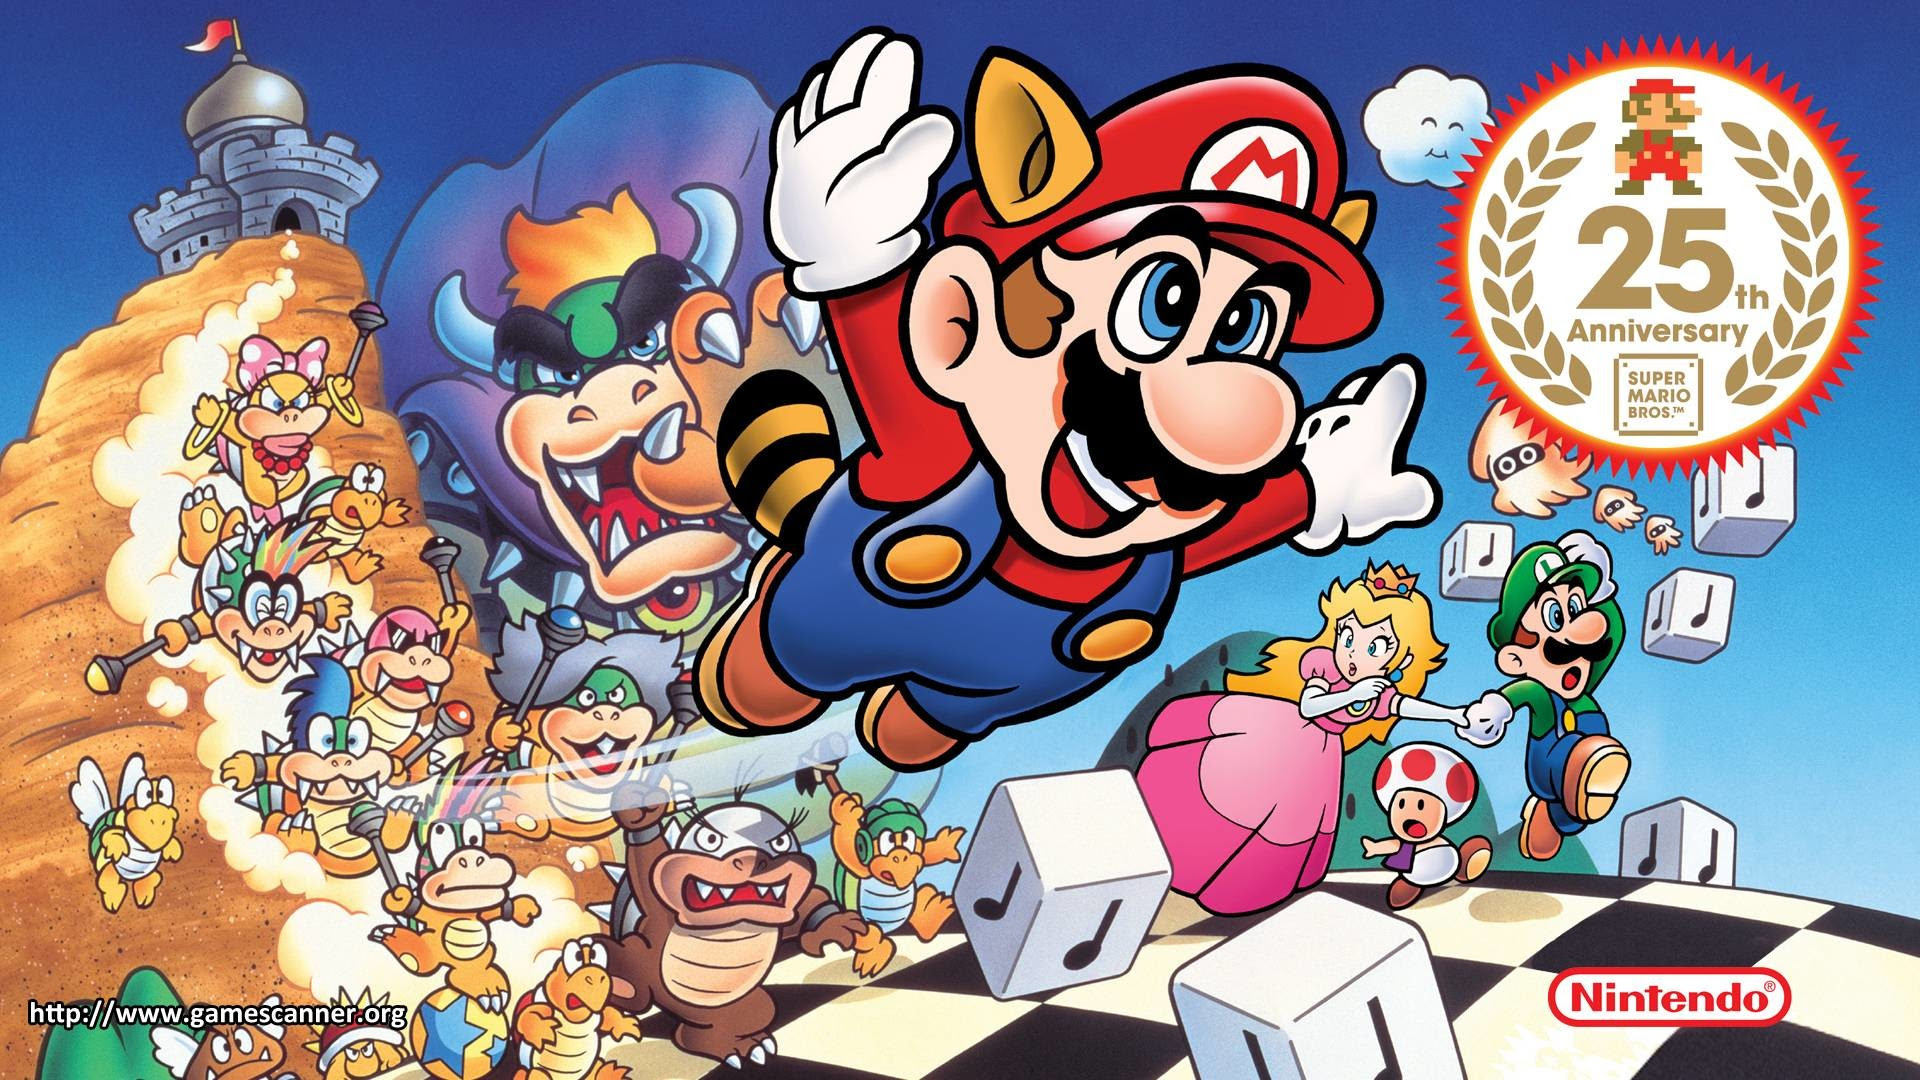 Super Mario 3 Wallpaper 64 Images